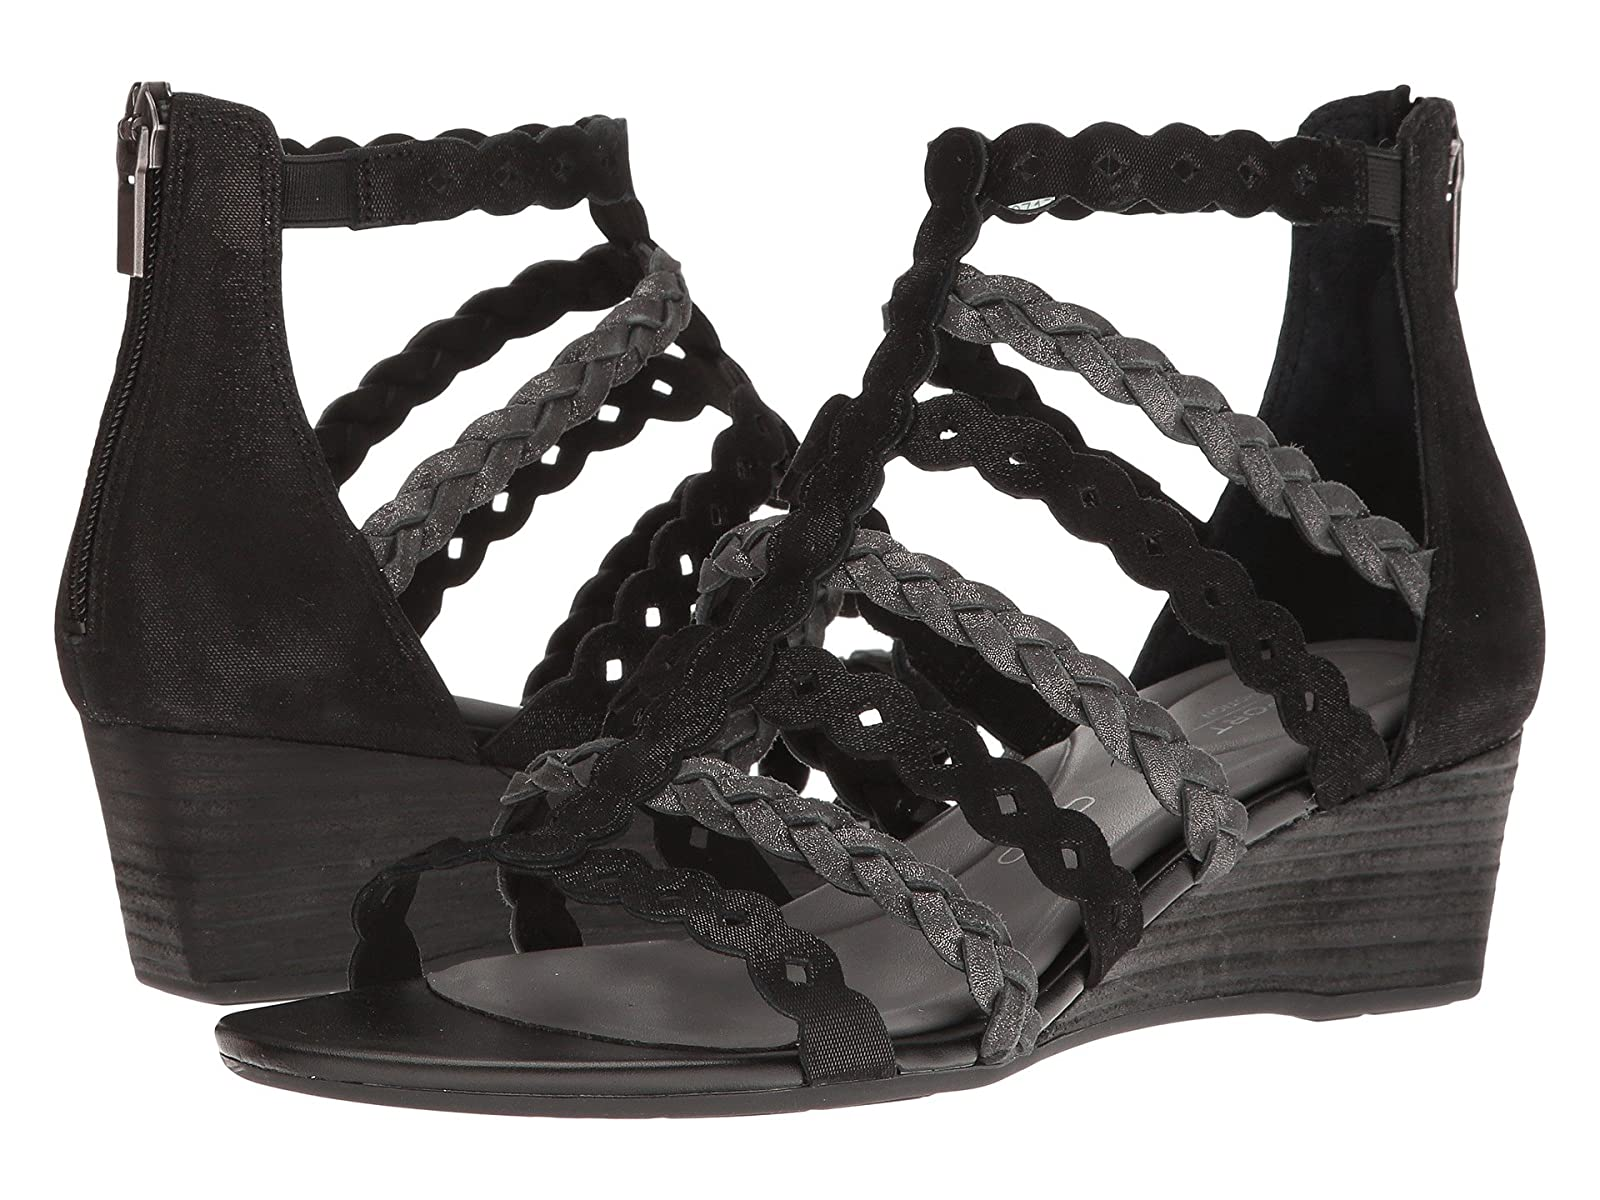 Rockport Total Motion 55mm Wedge Gladiator SandalCheap and distinctive eye-catching shoes